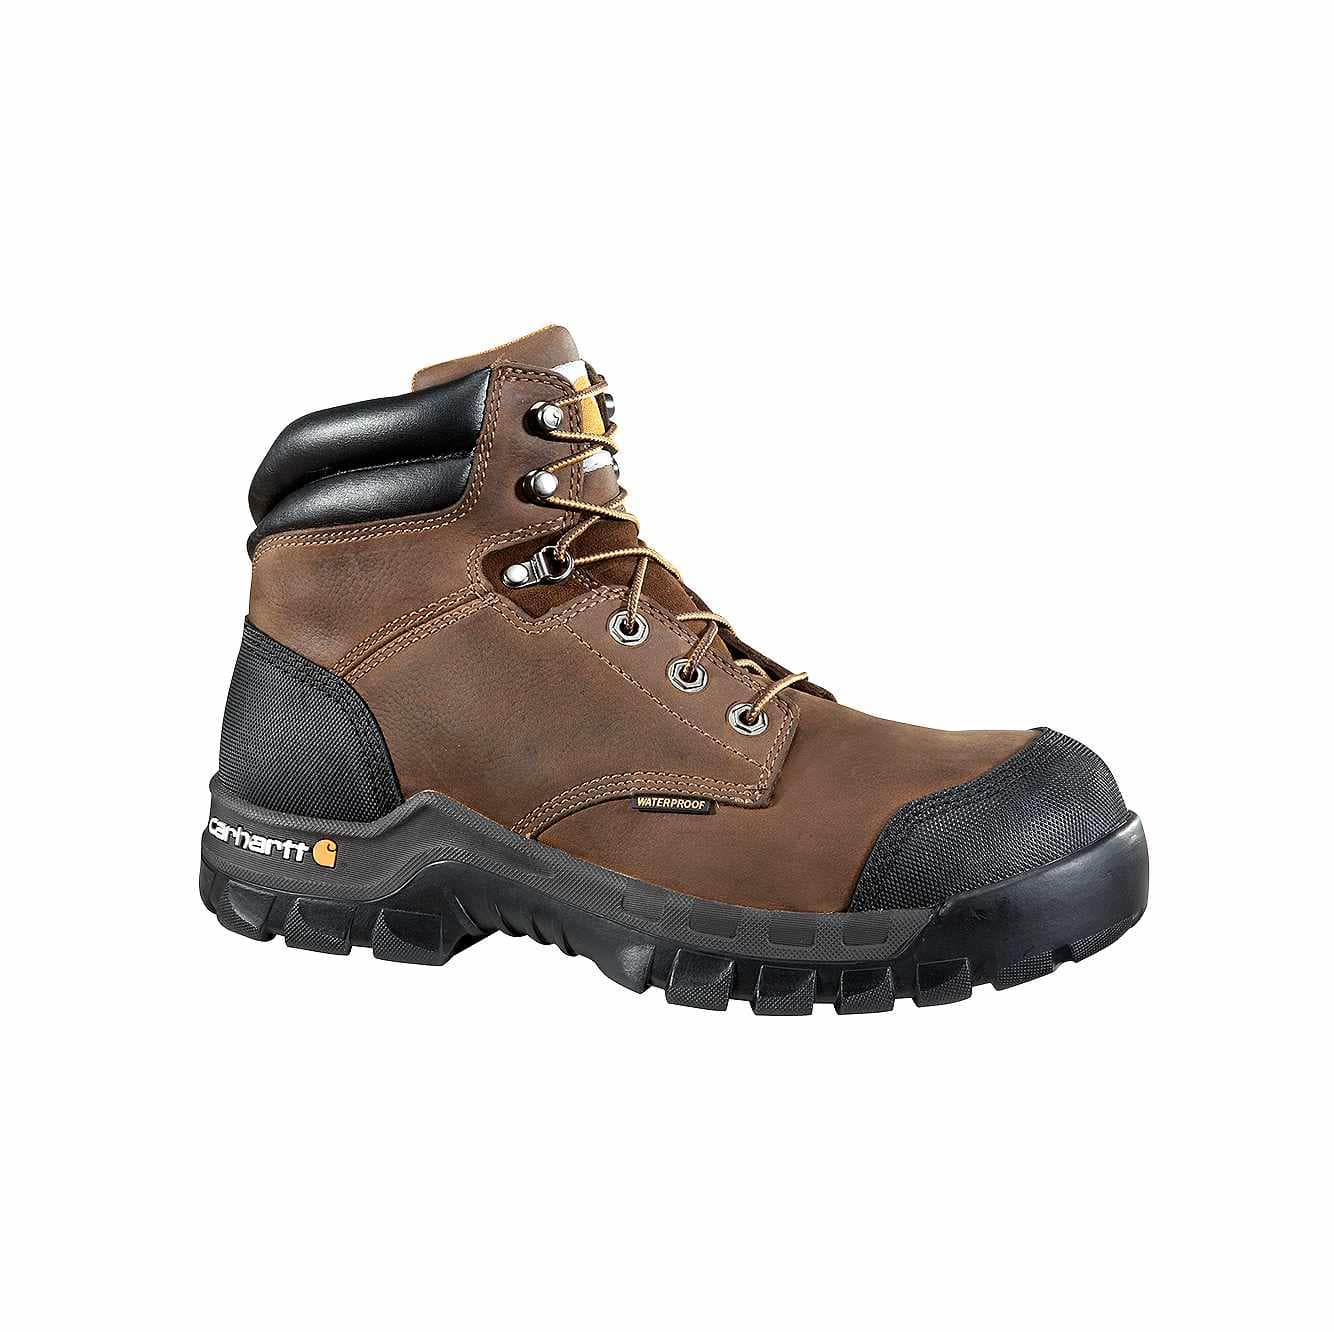 Picture of Rugged Flex® 6-Inch Composite Toe Work Boot in DK Brown Oil Tanned